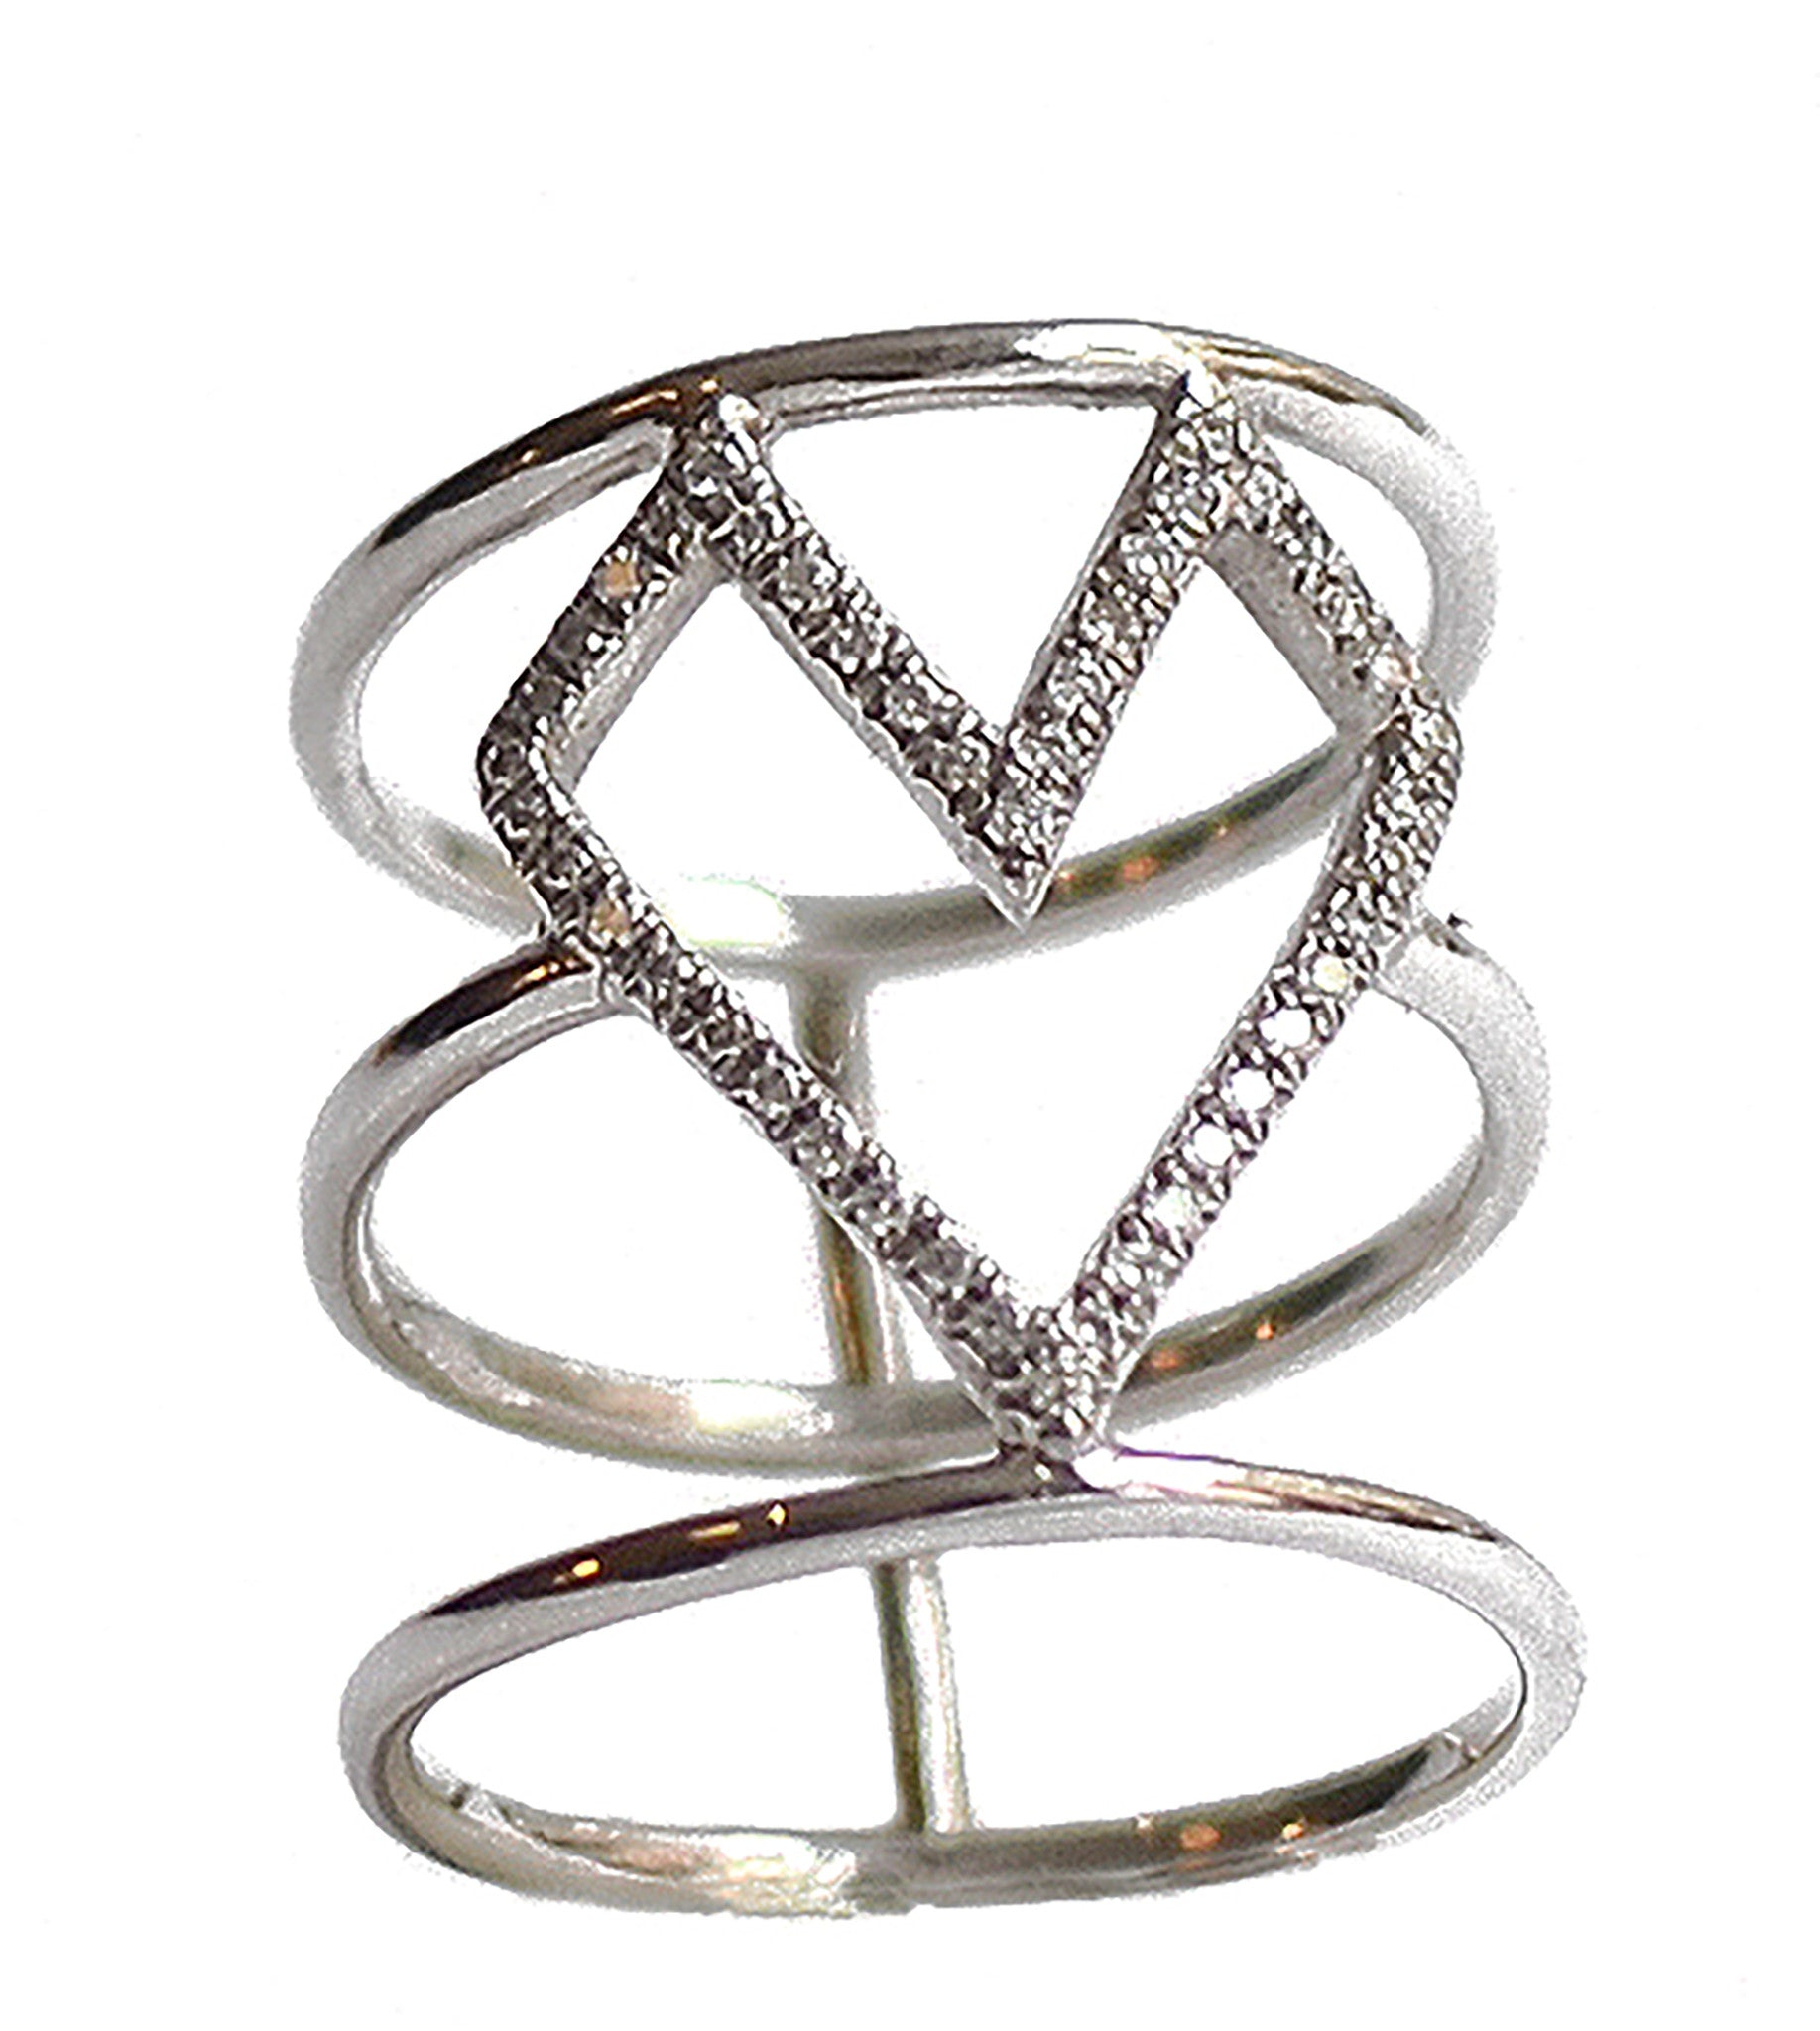 Micro Pave Diamonds Caged Gothic Heart Ring Wendy Nichol Fine Jewelry Designer solid 14k Gold